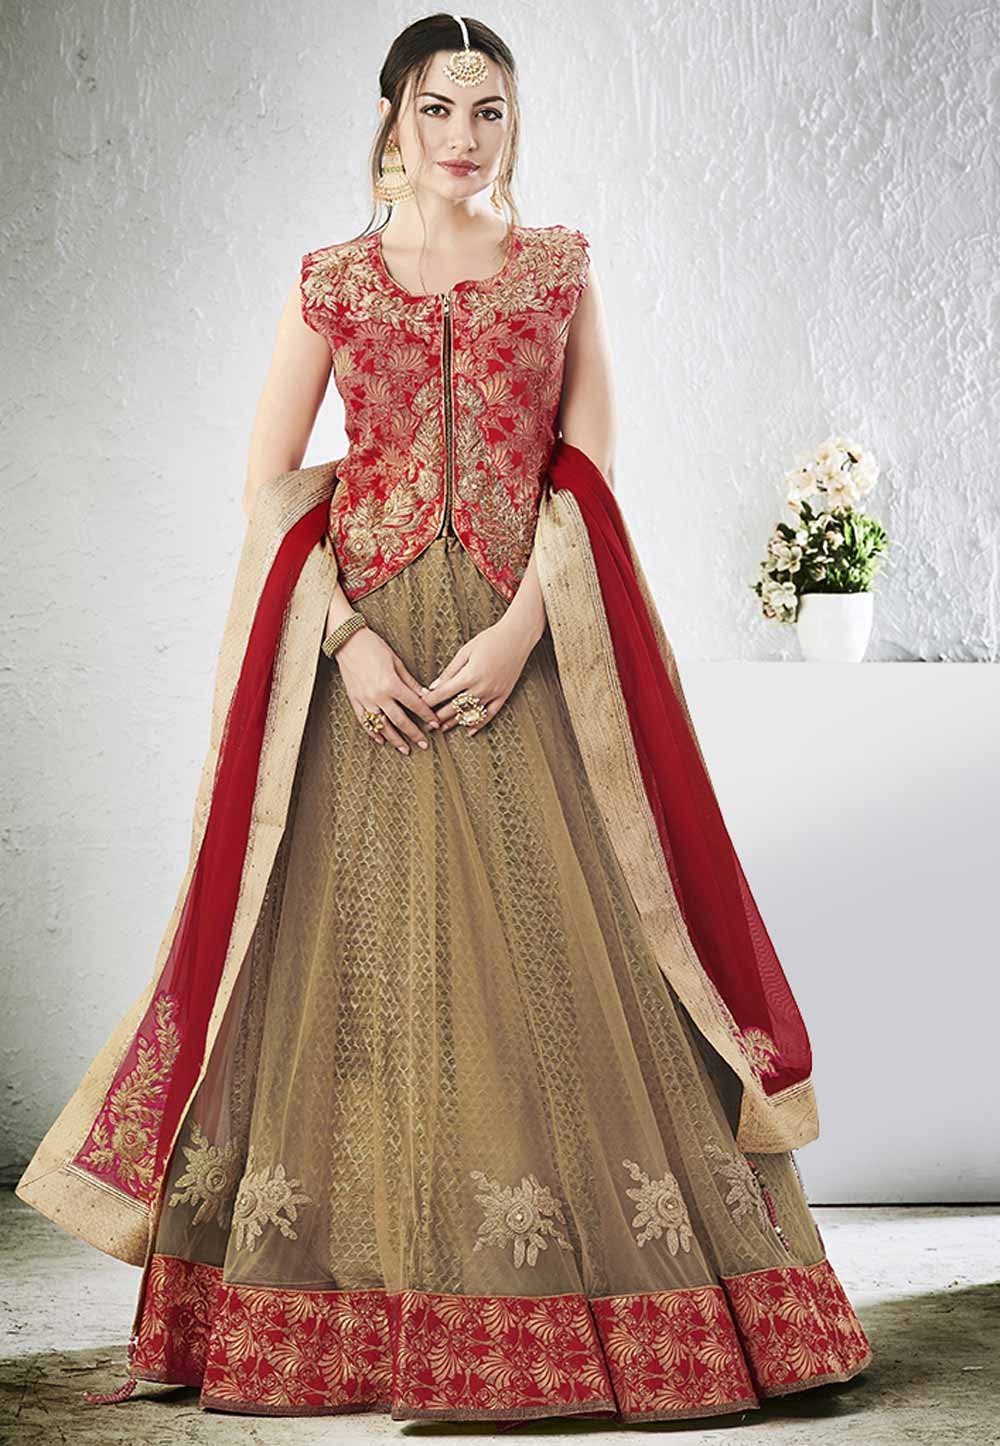 Astounding Lehenga Choli in Beige Color & Embroidery Work